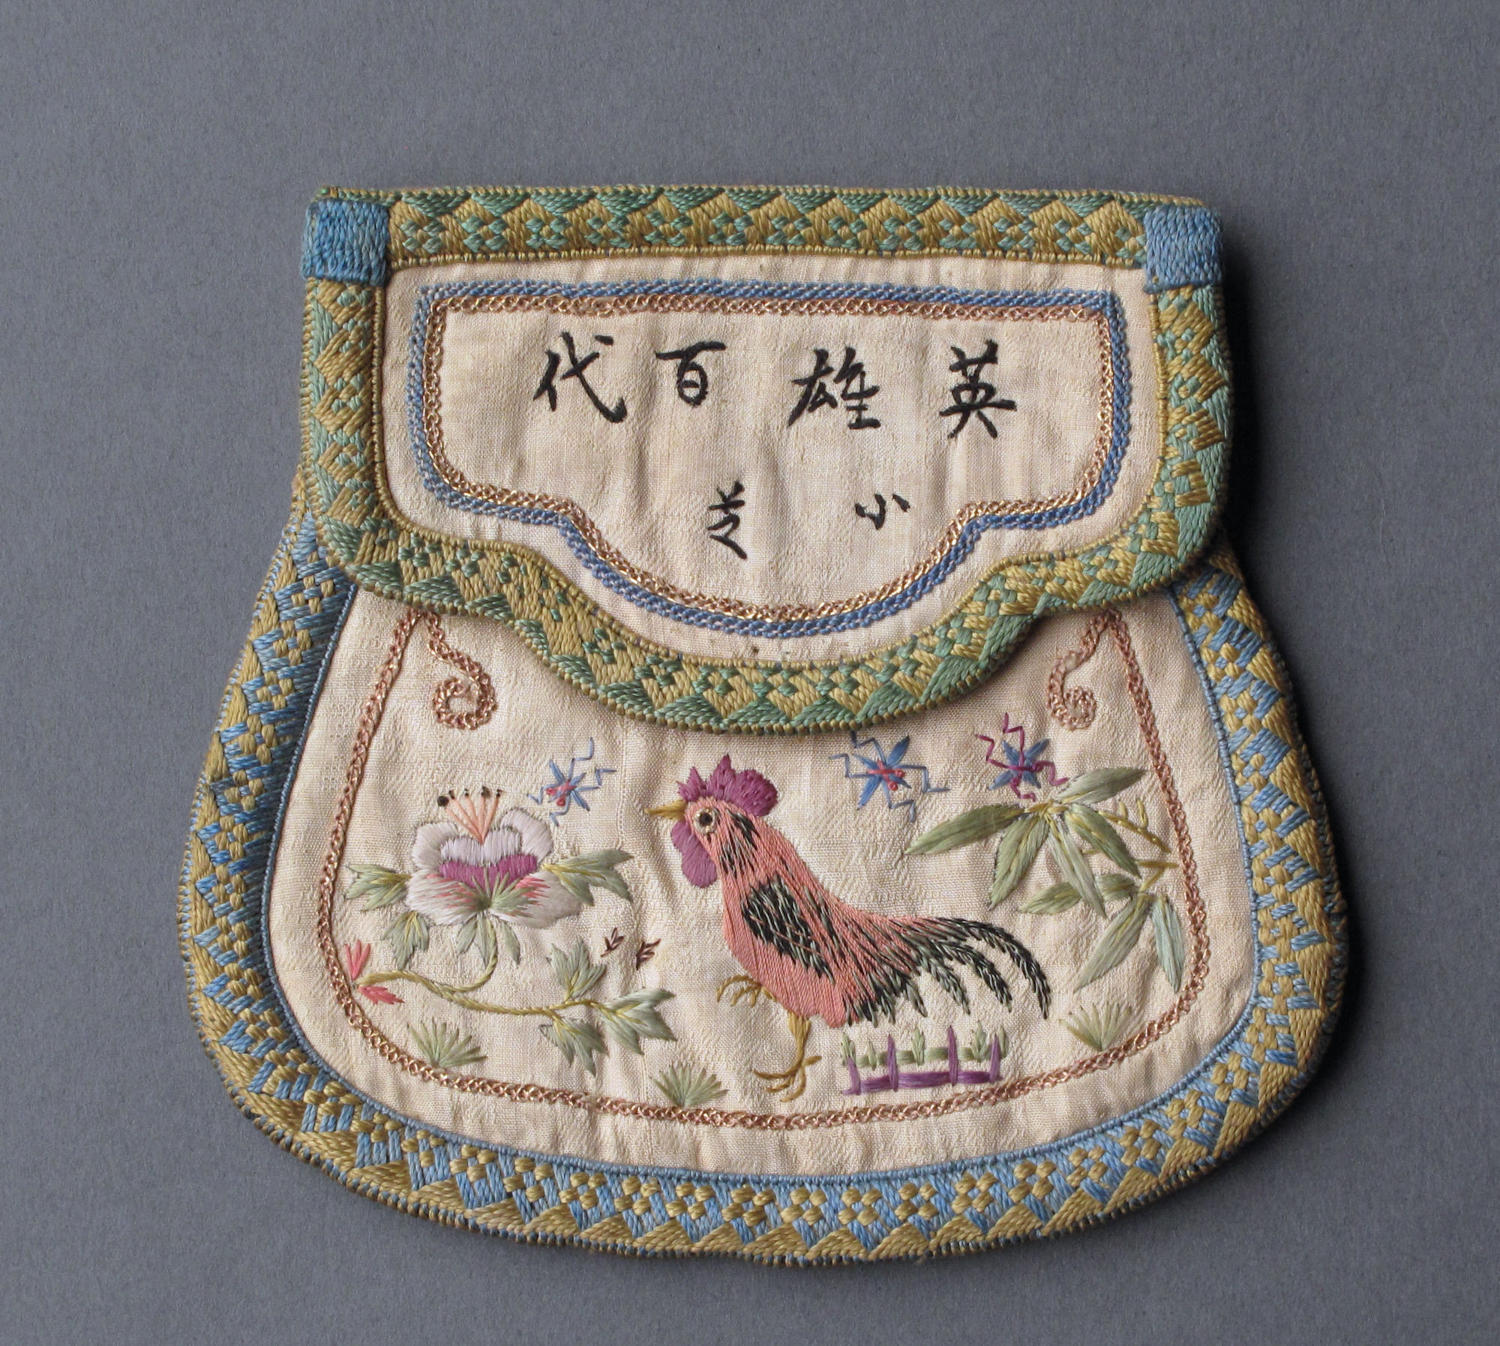 A Chinese silk purse with cockerel decoration c1900